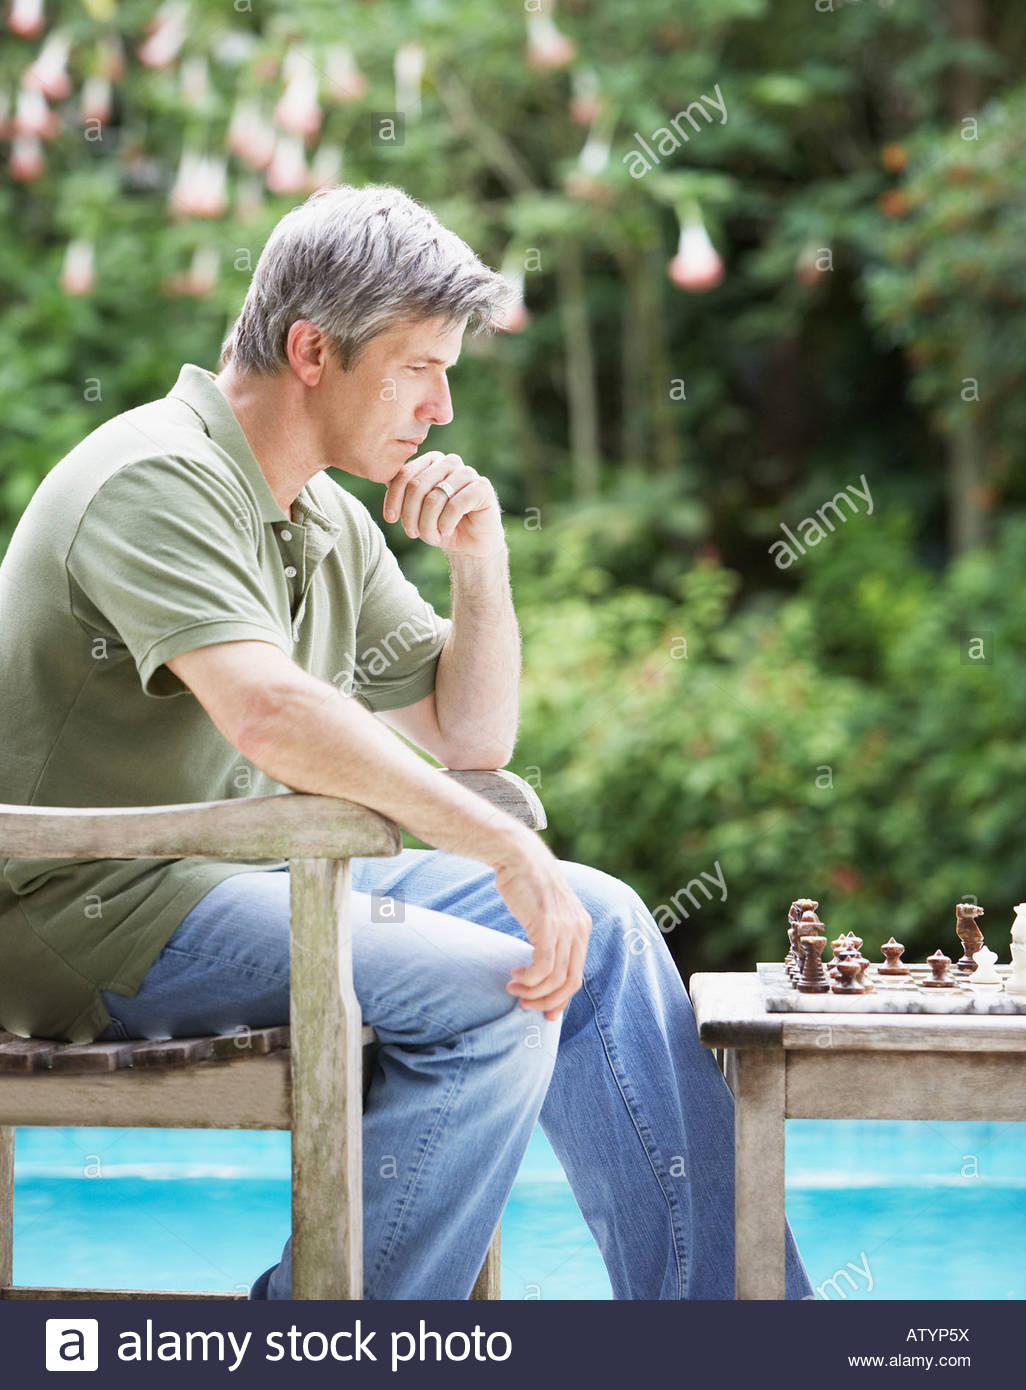 Man outdoors playing chess by swimming pool - Stock Image